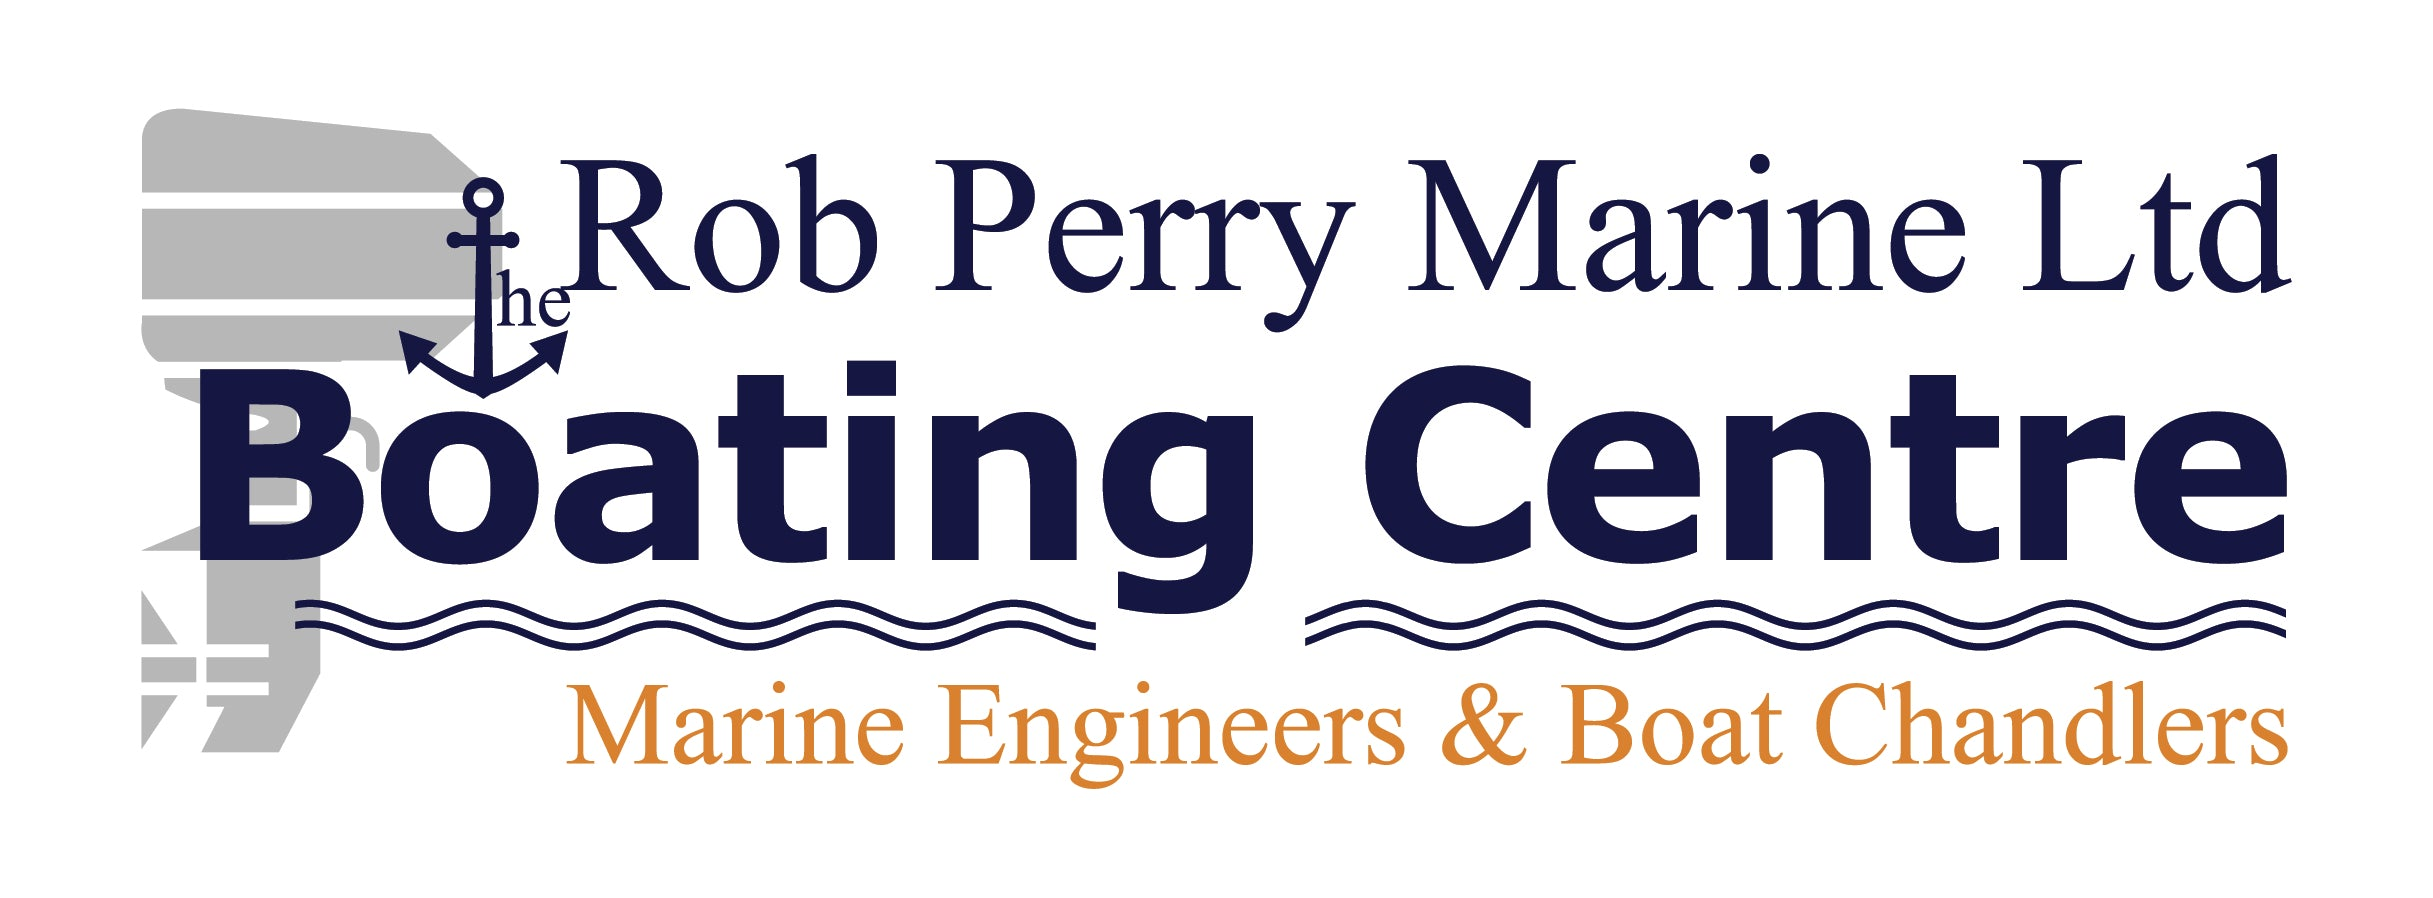 Rob Perry Marine